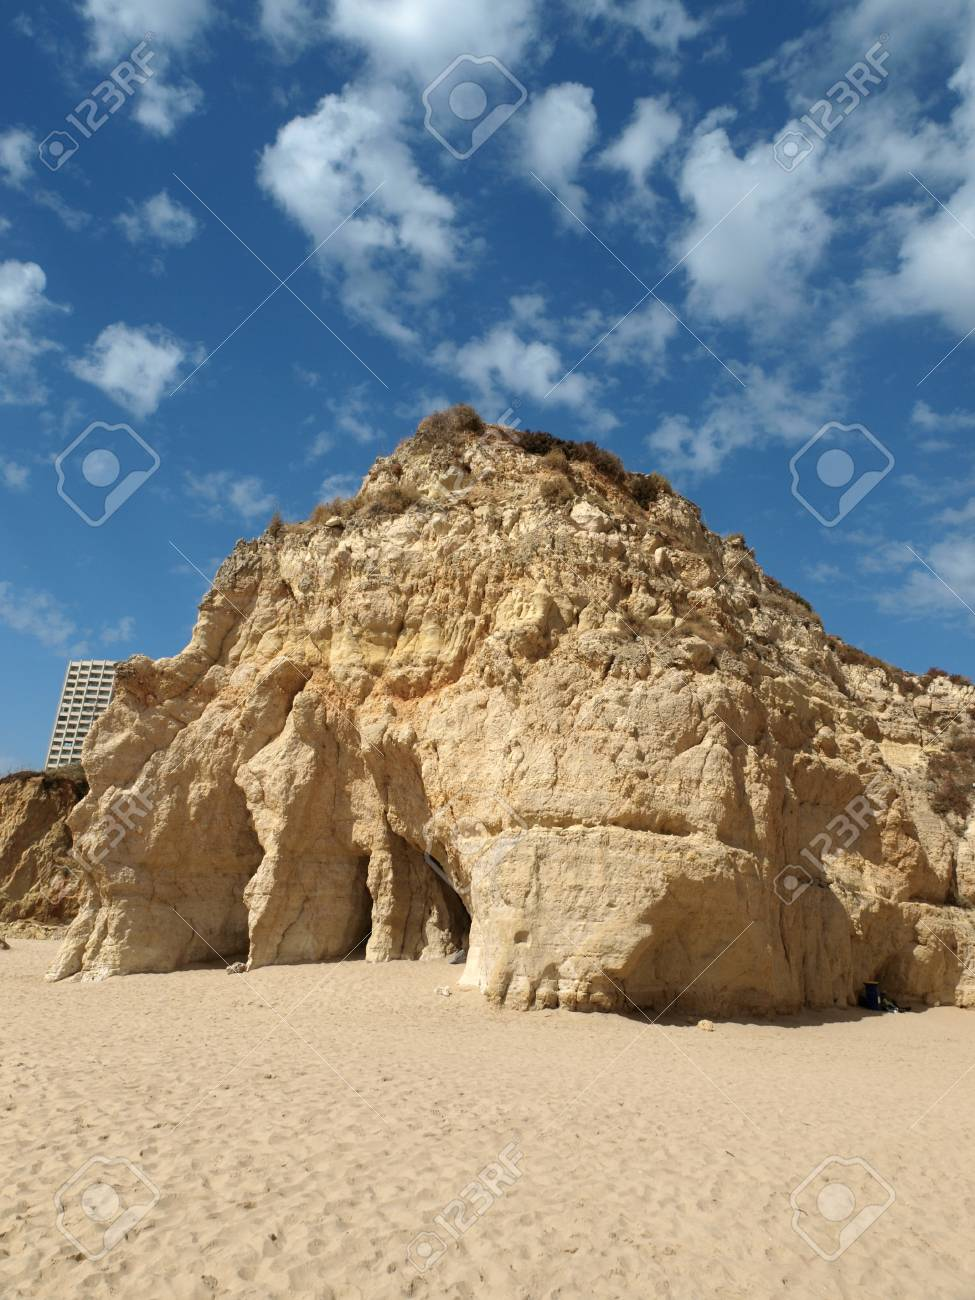 Colorful rock cliffs of the Algarve in Portugal Stock Photo - 12774342